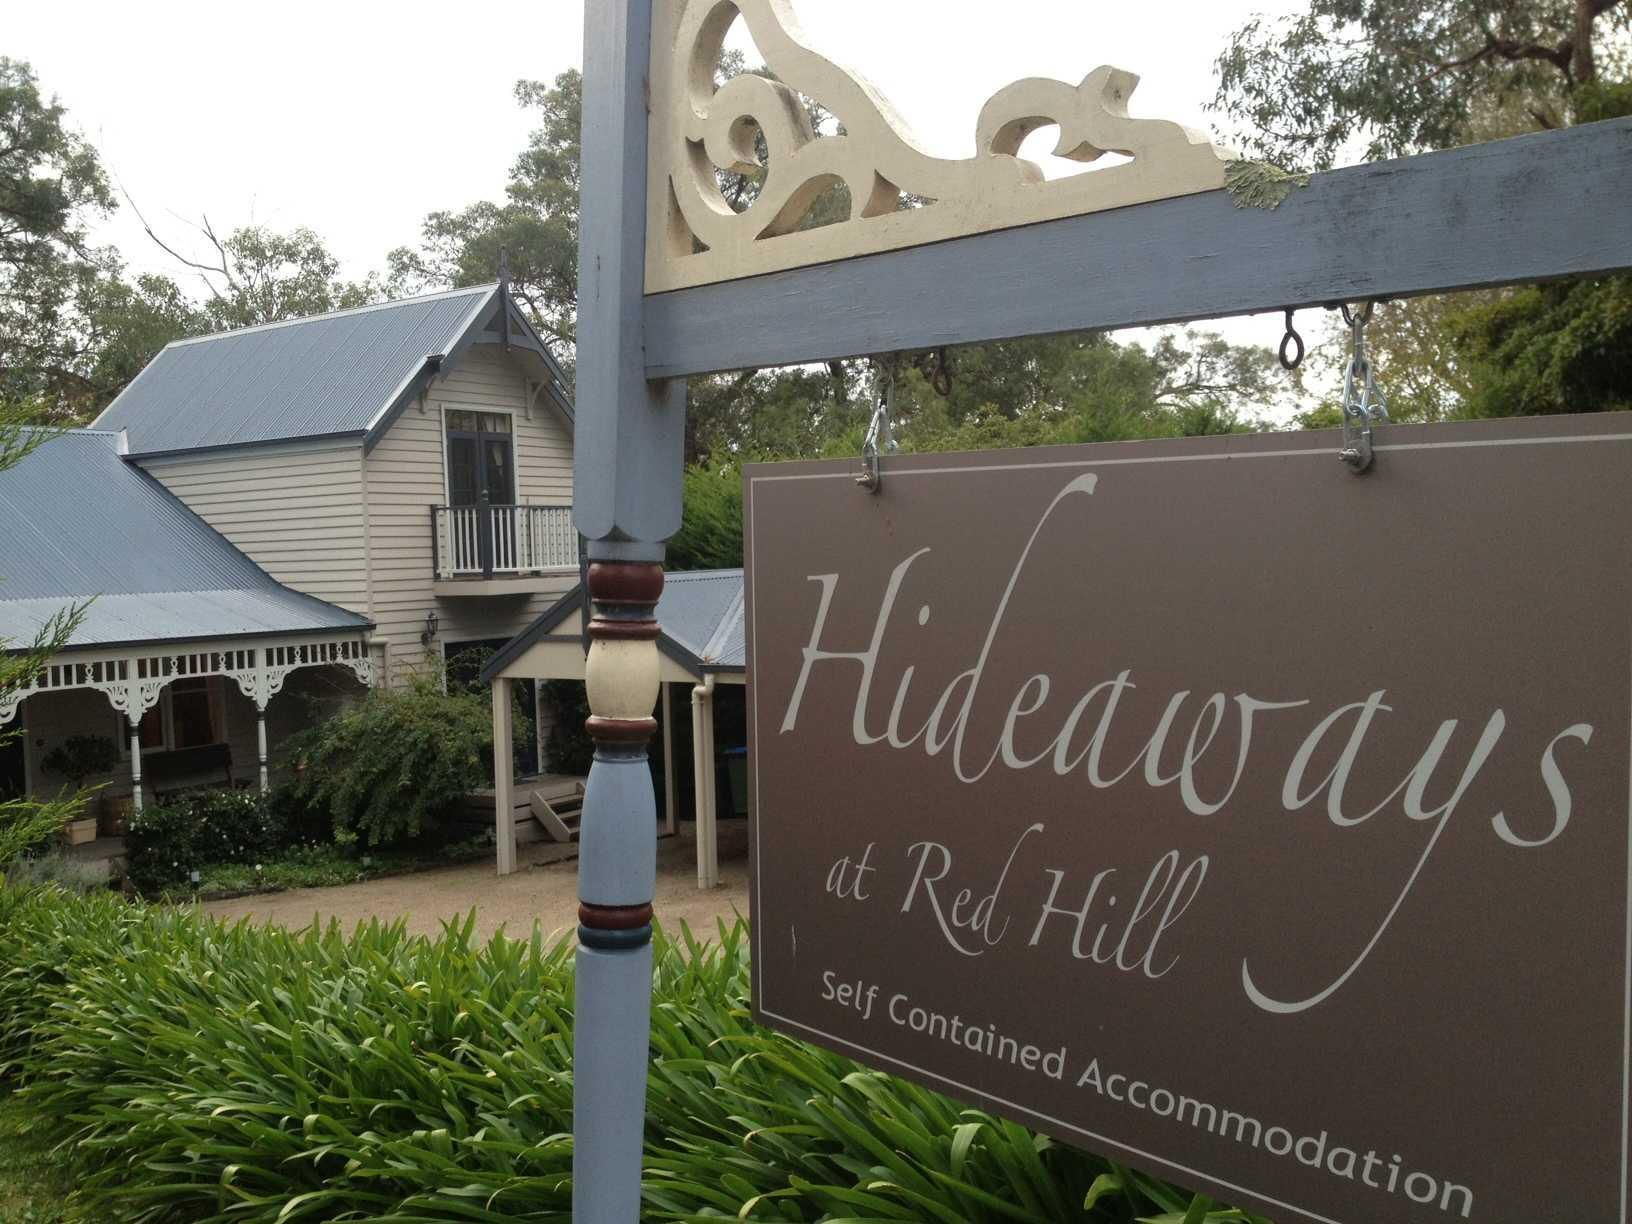 Hill Singapore Pictures on At Red Hill Hotel Mornington Peninsula   Hideaways At Red Hill